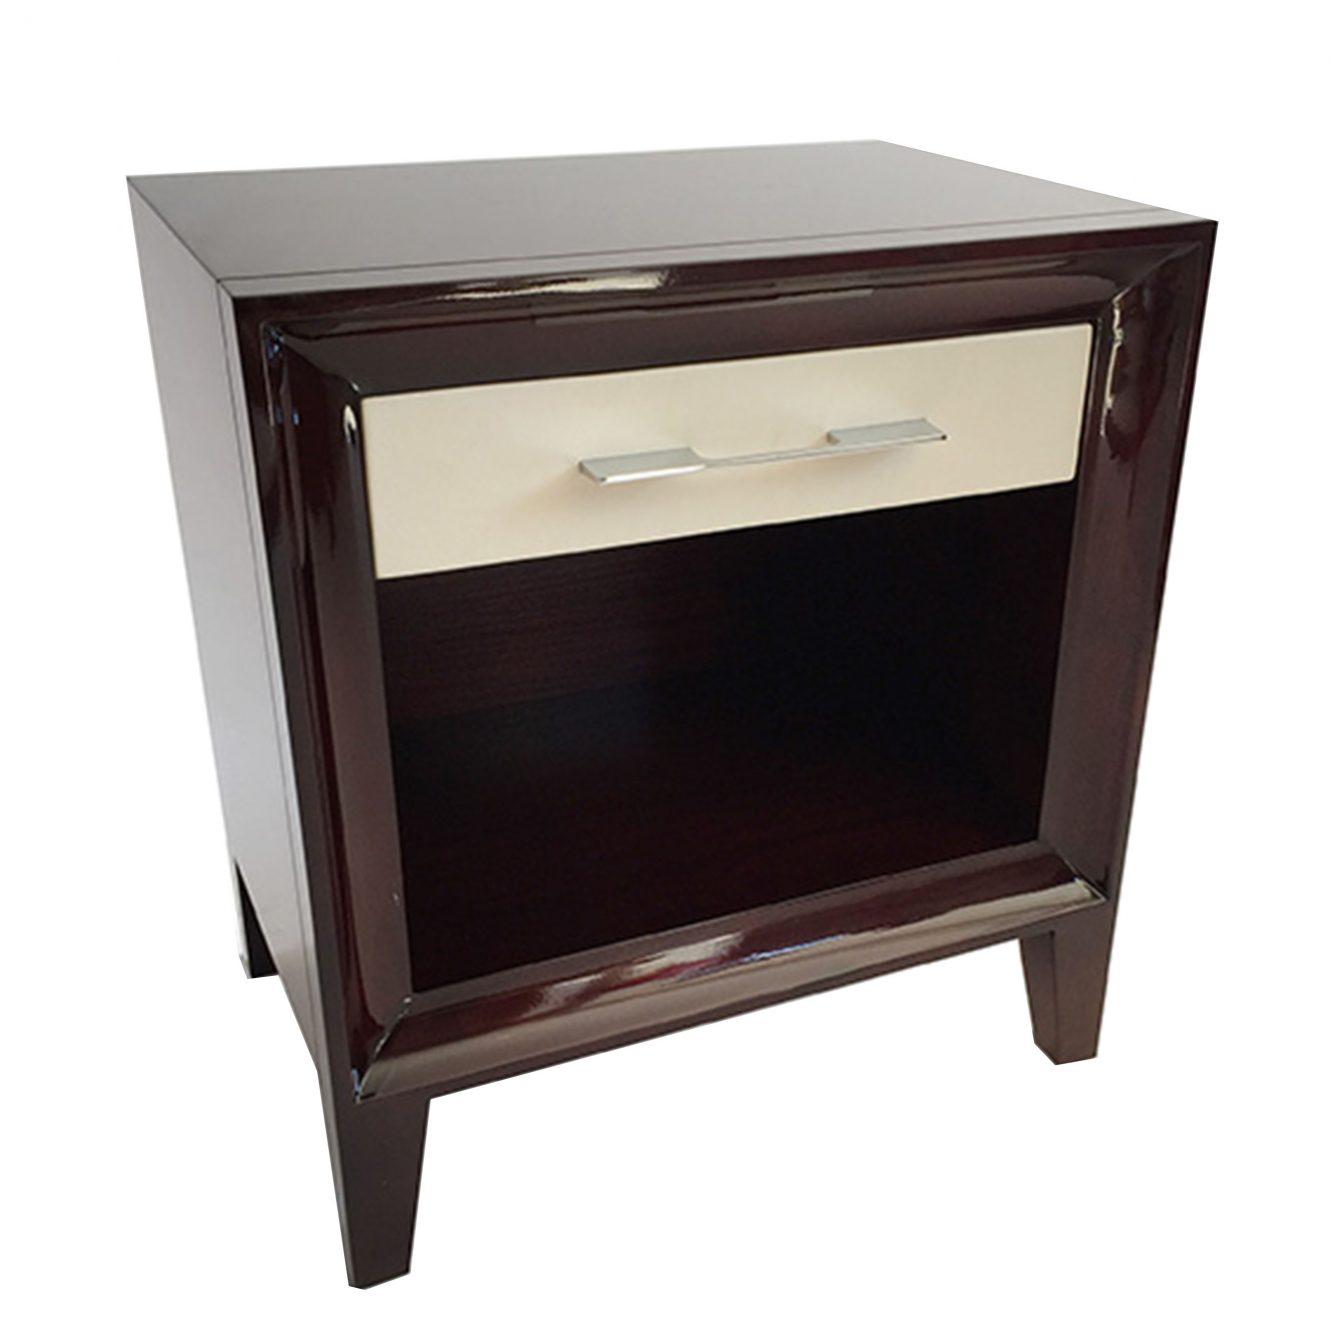 House Haven Bedside Tables 0003 house and haven IMG 6938